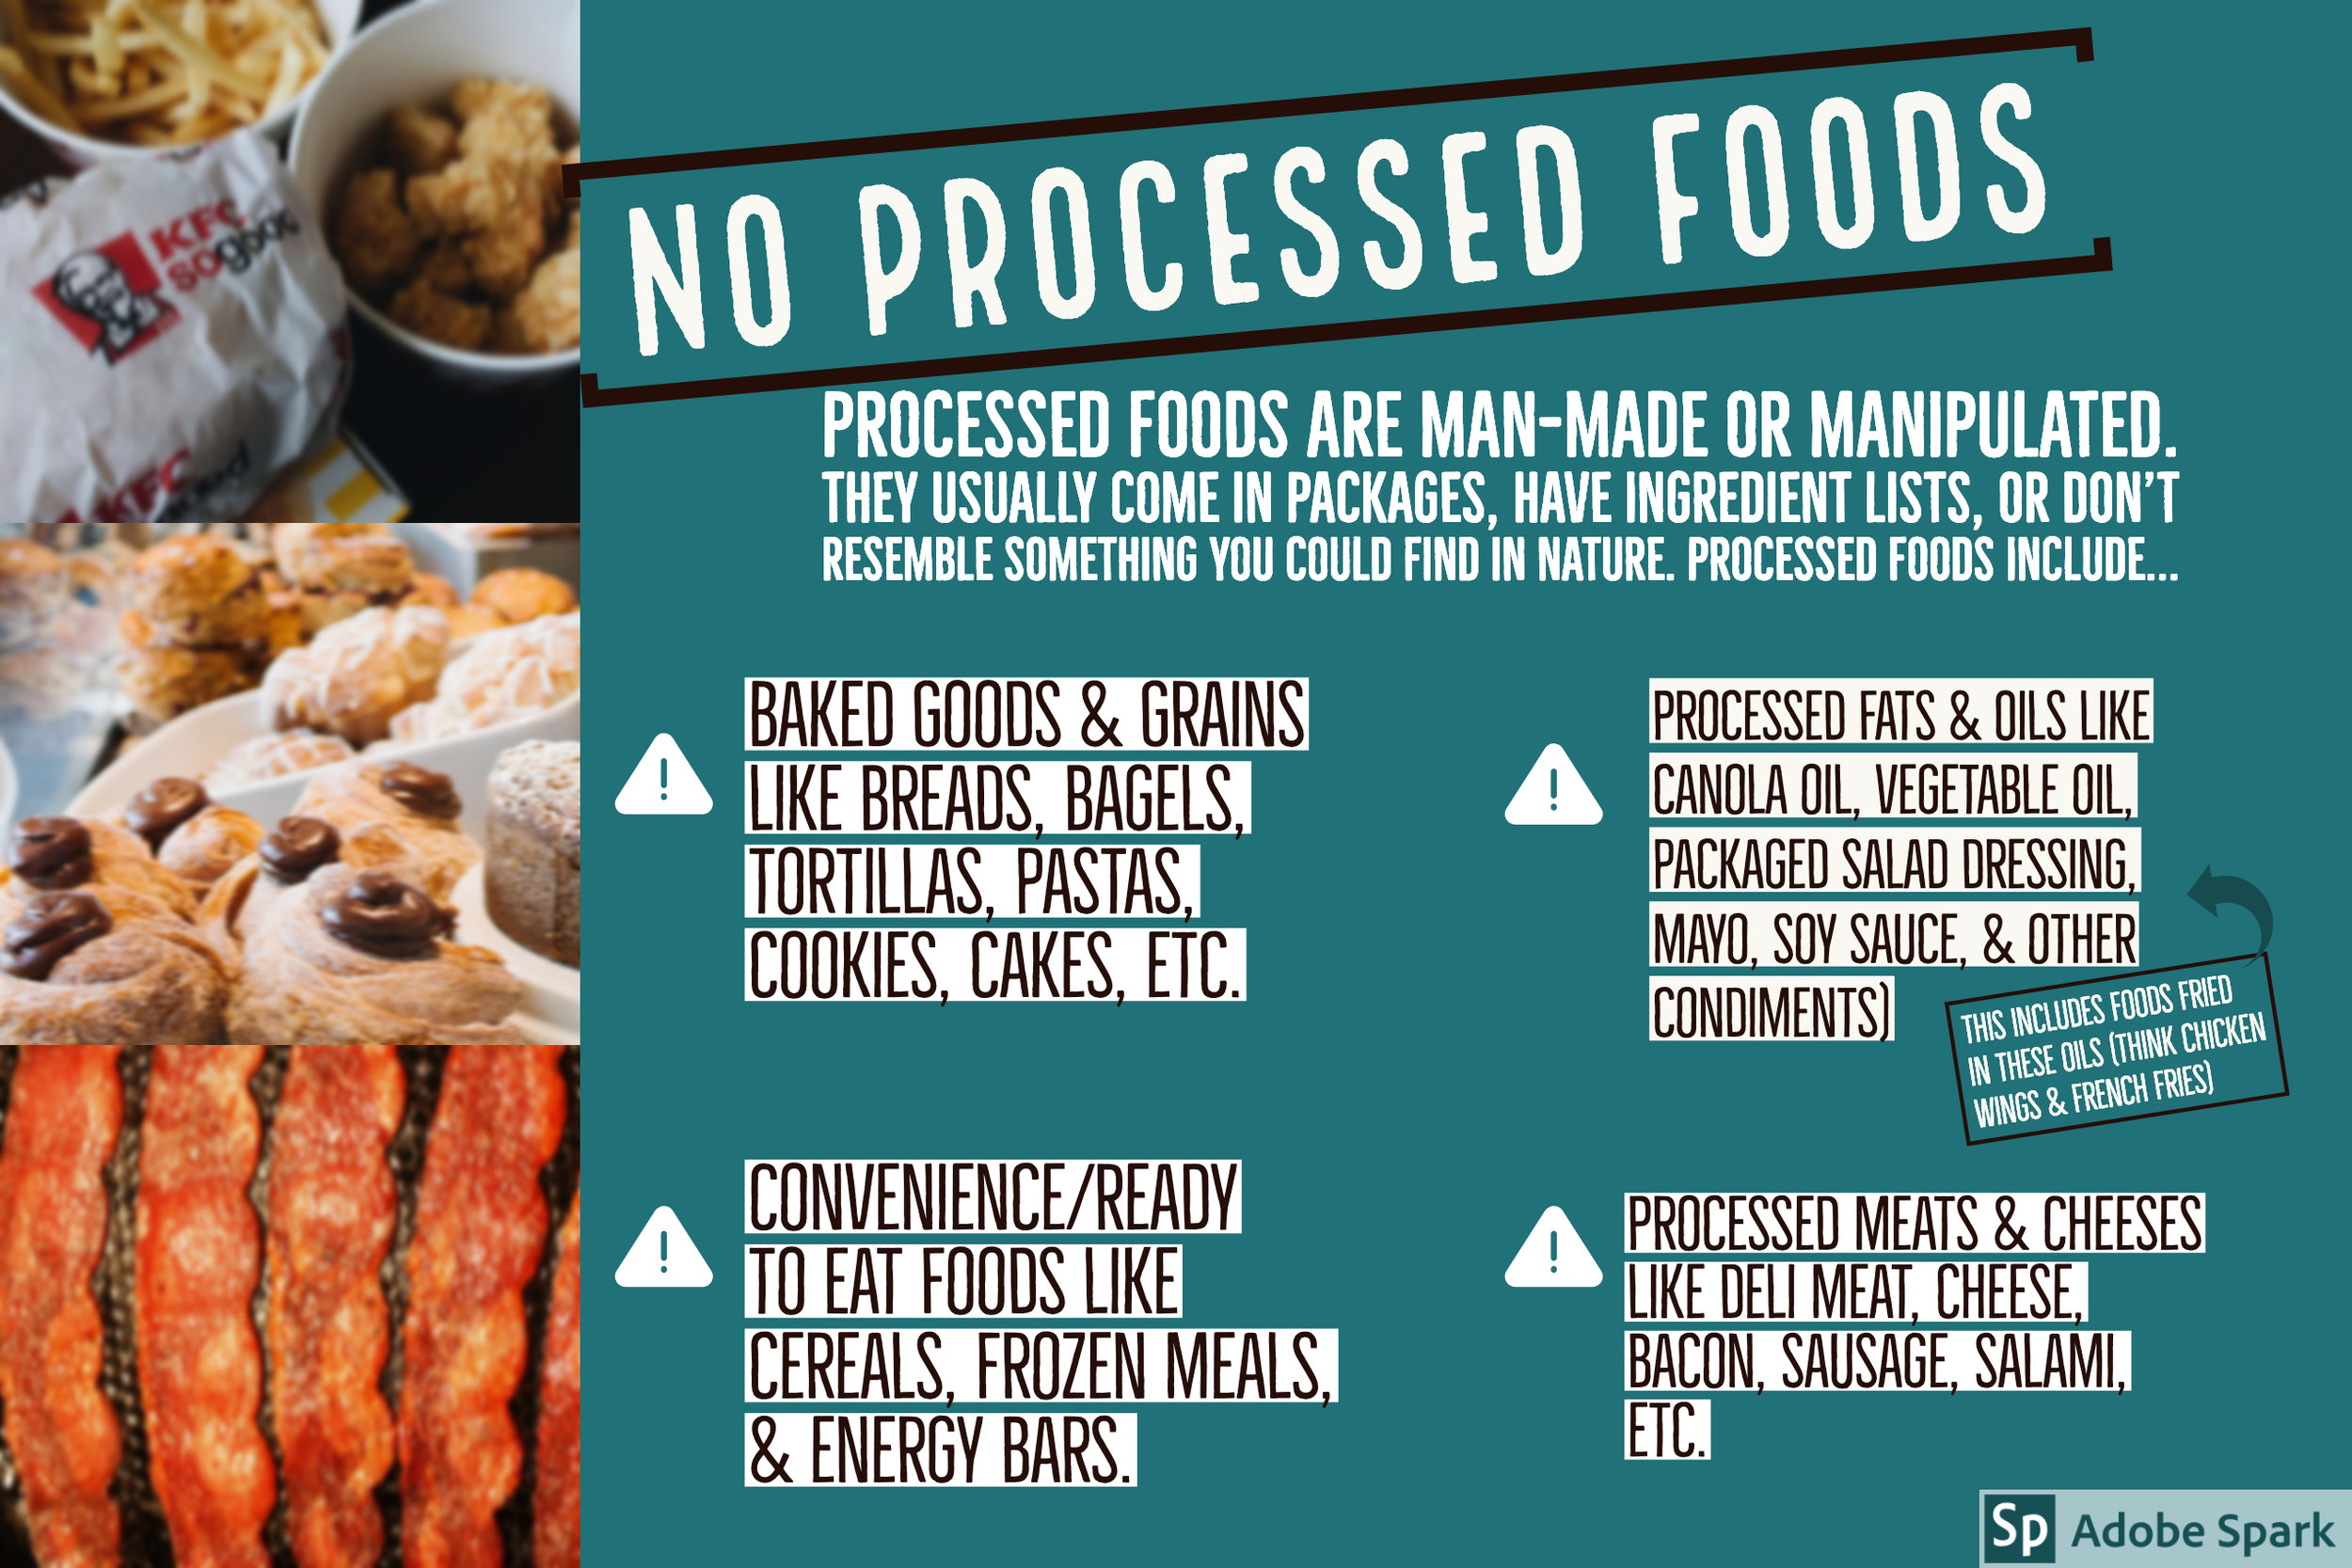 No Processed Foods.jpg